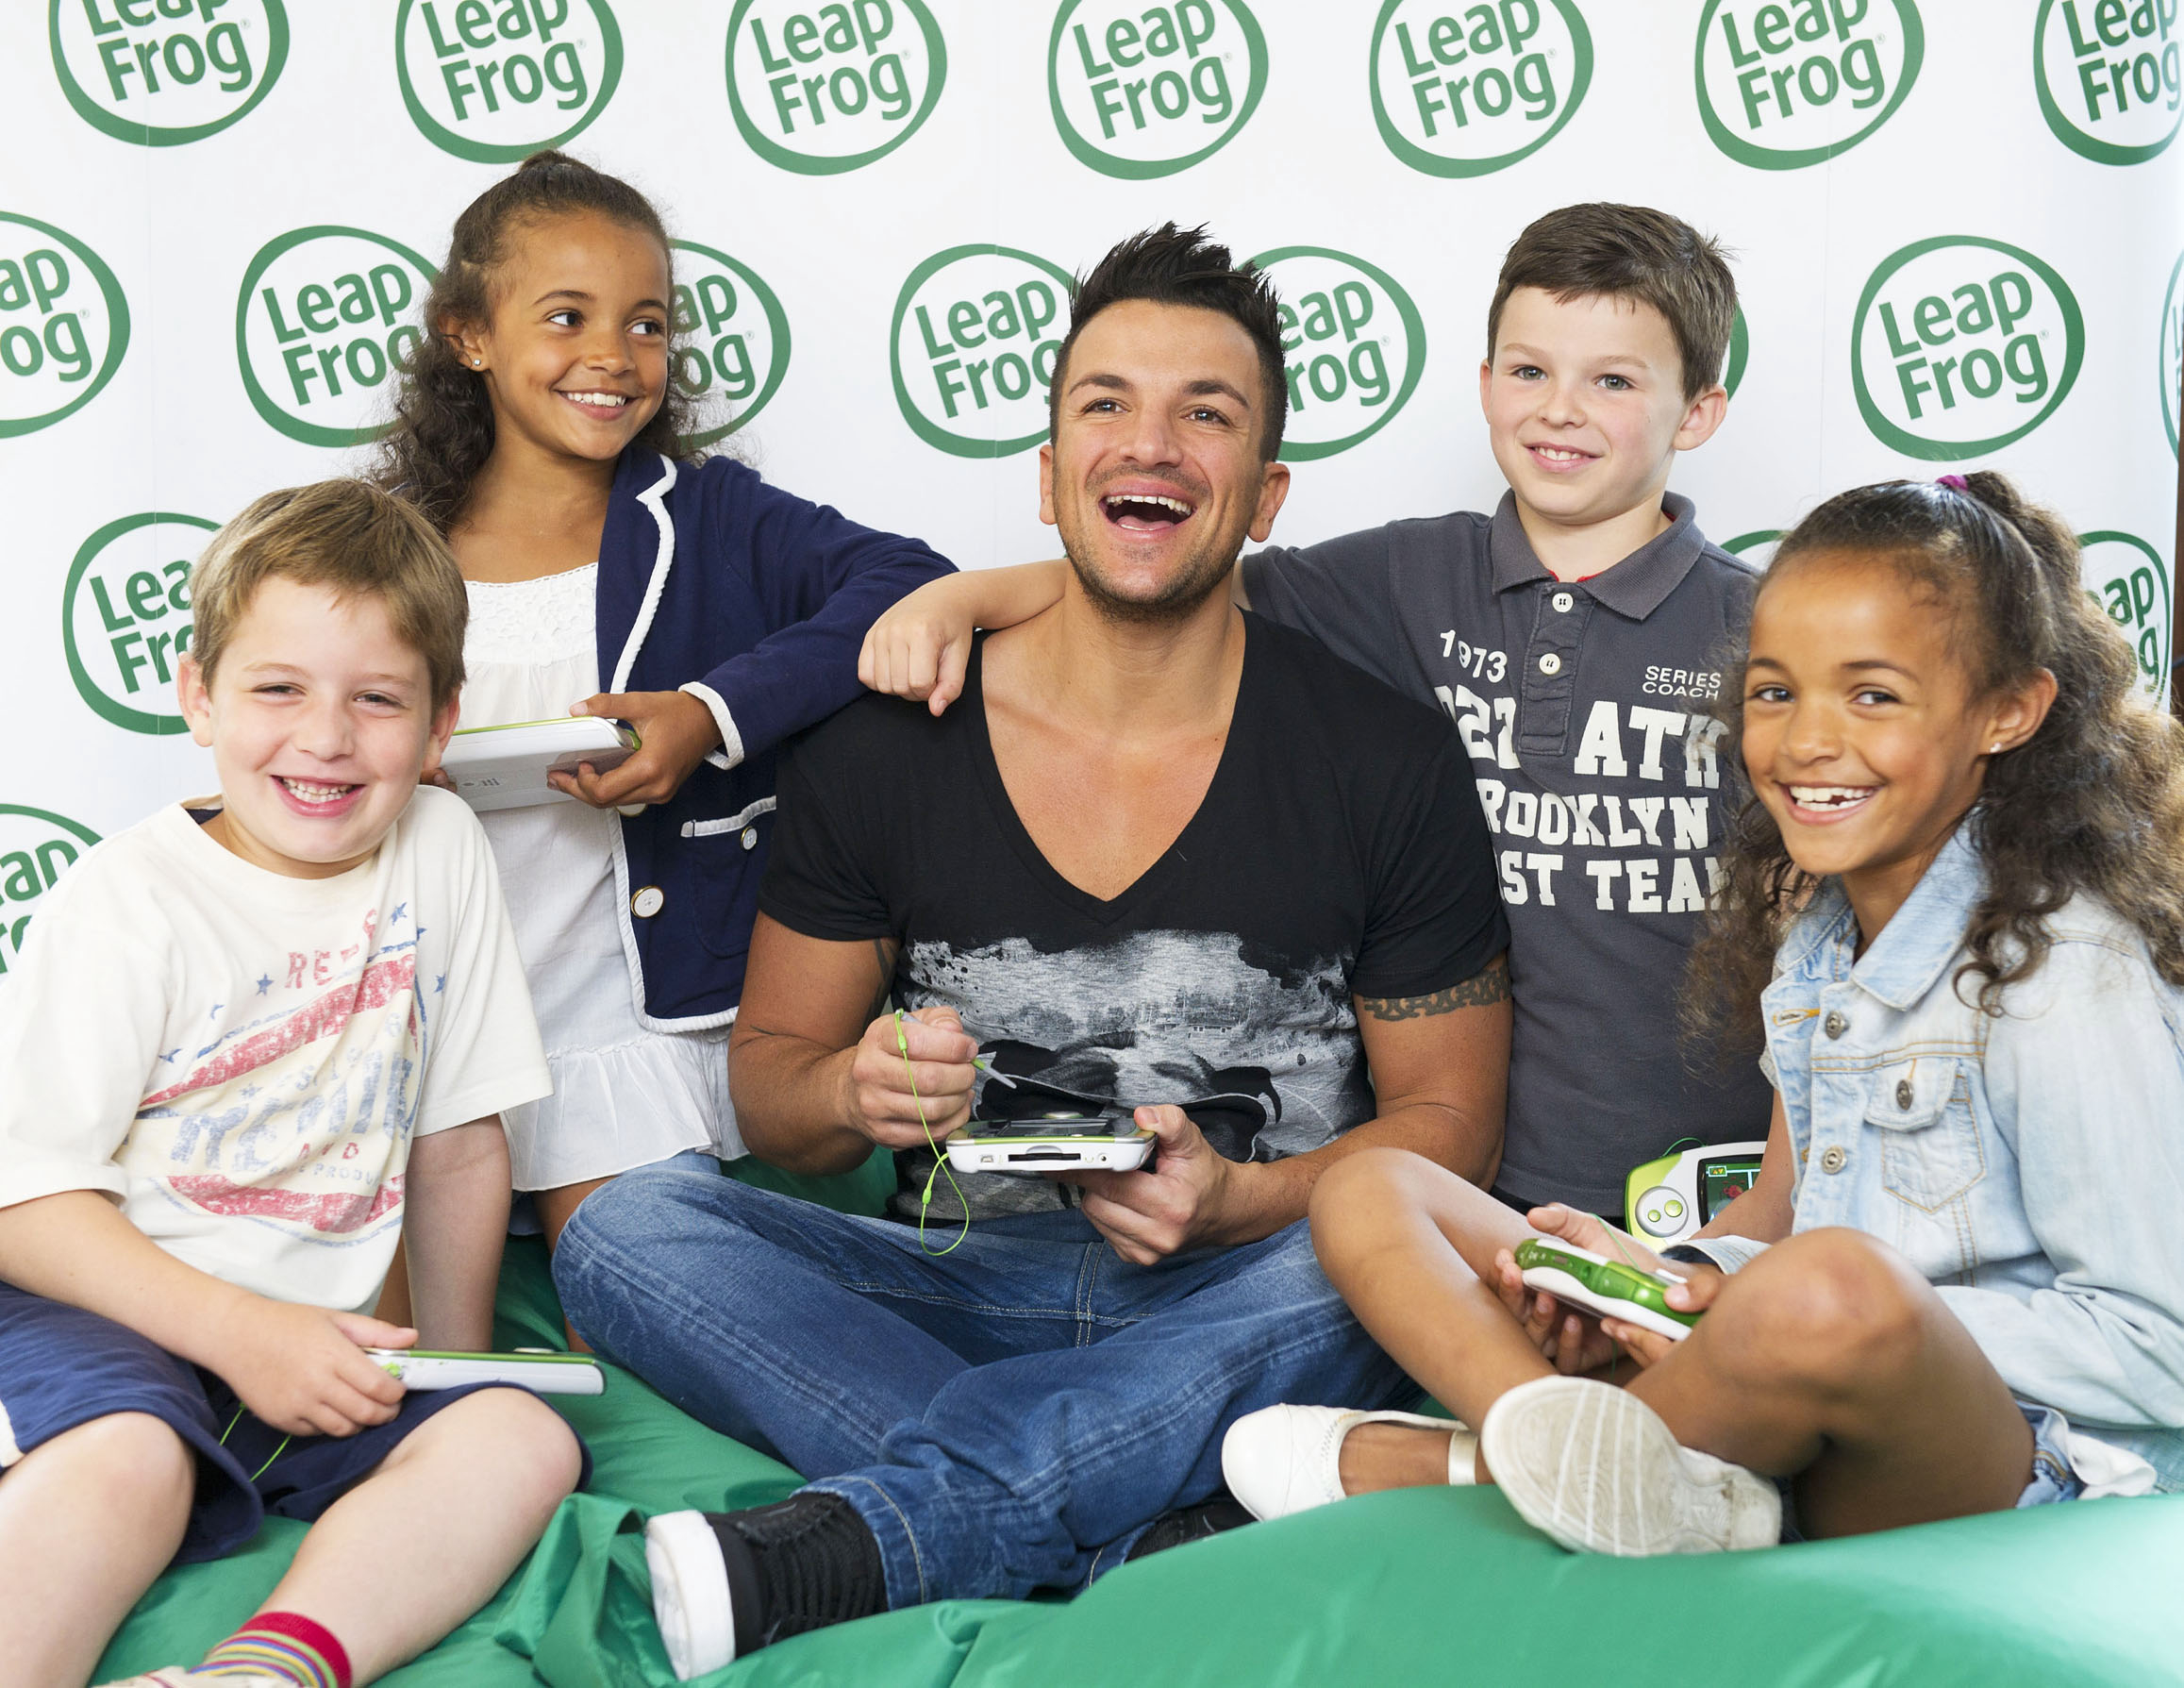 Peter Andre LeapPad2